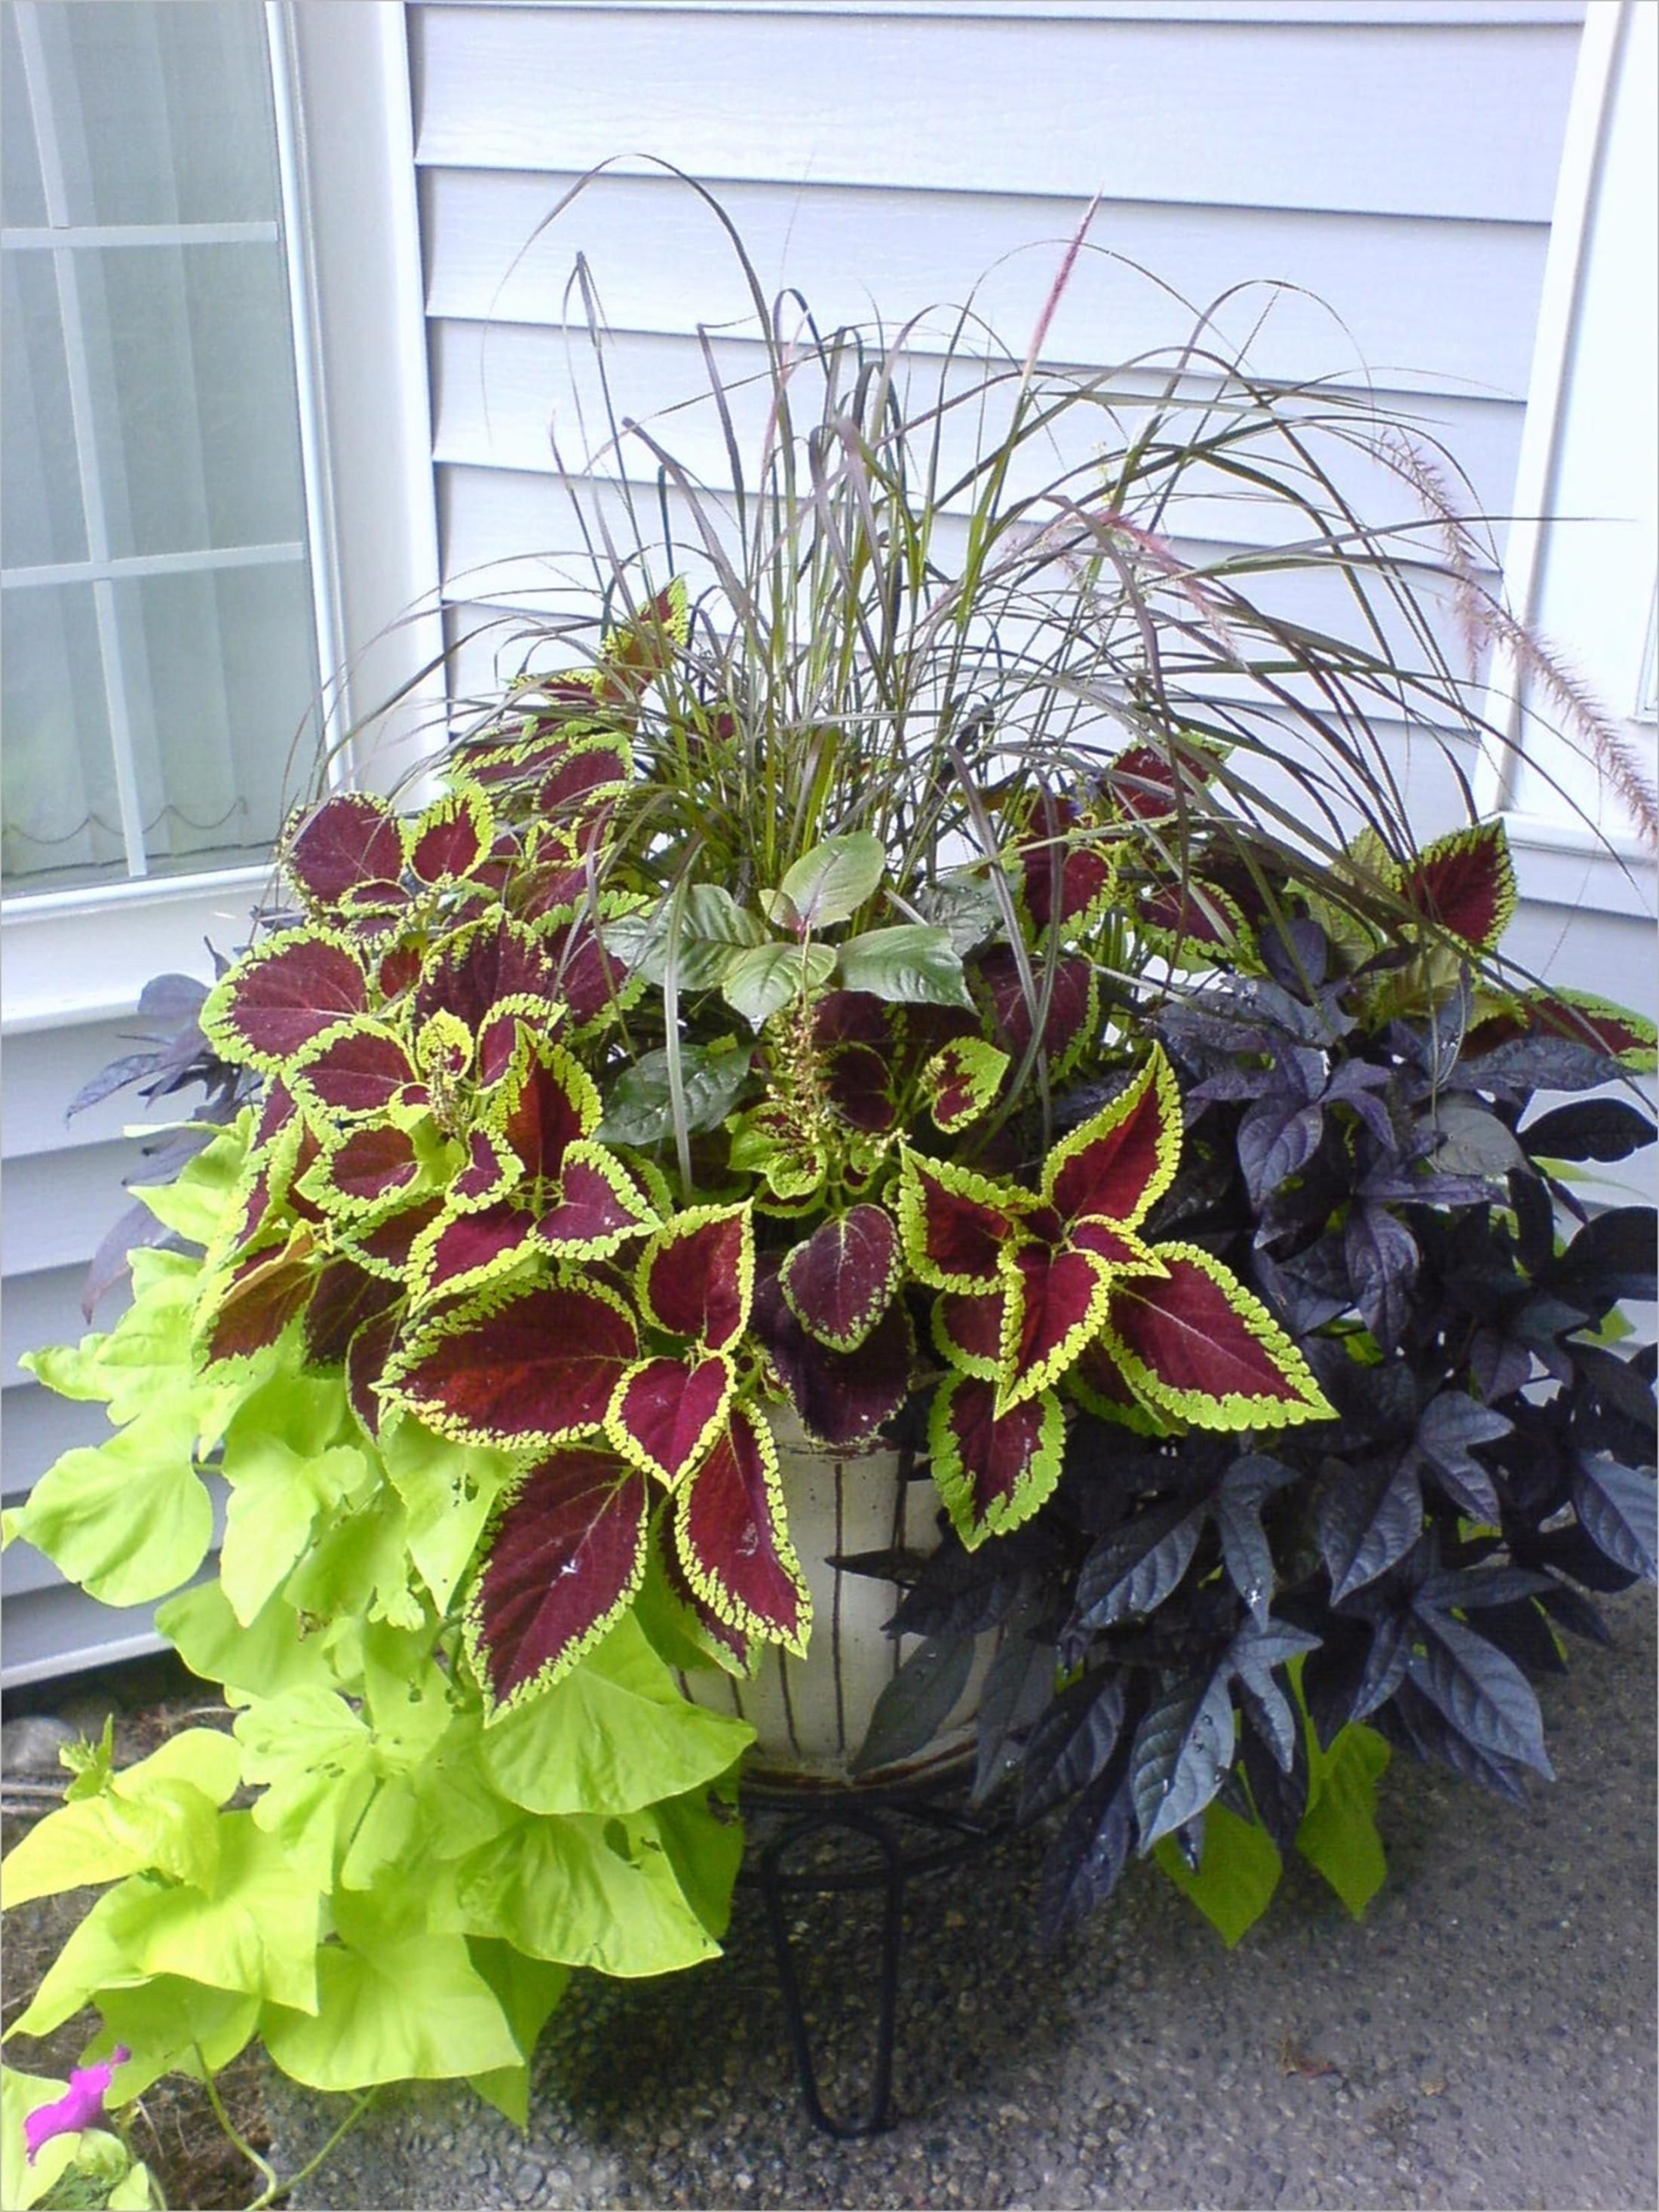 1f3ef77a71d60a2f833e3048b0290be1 - Vegetable Combination Ideas For Container Gardens